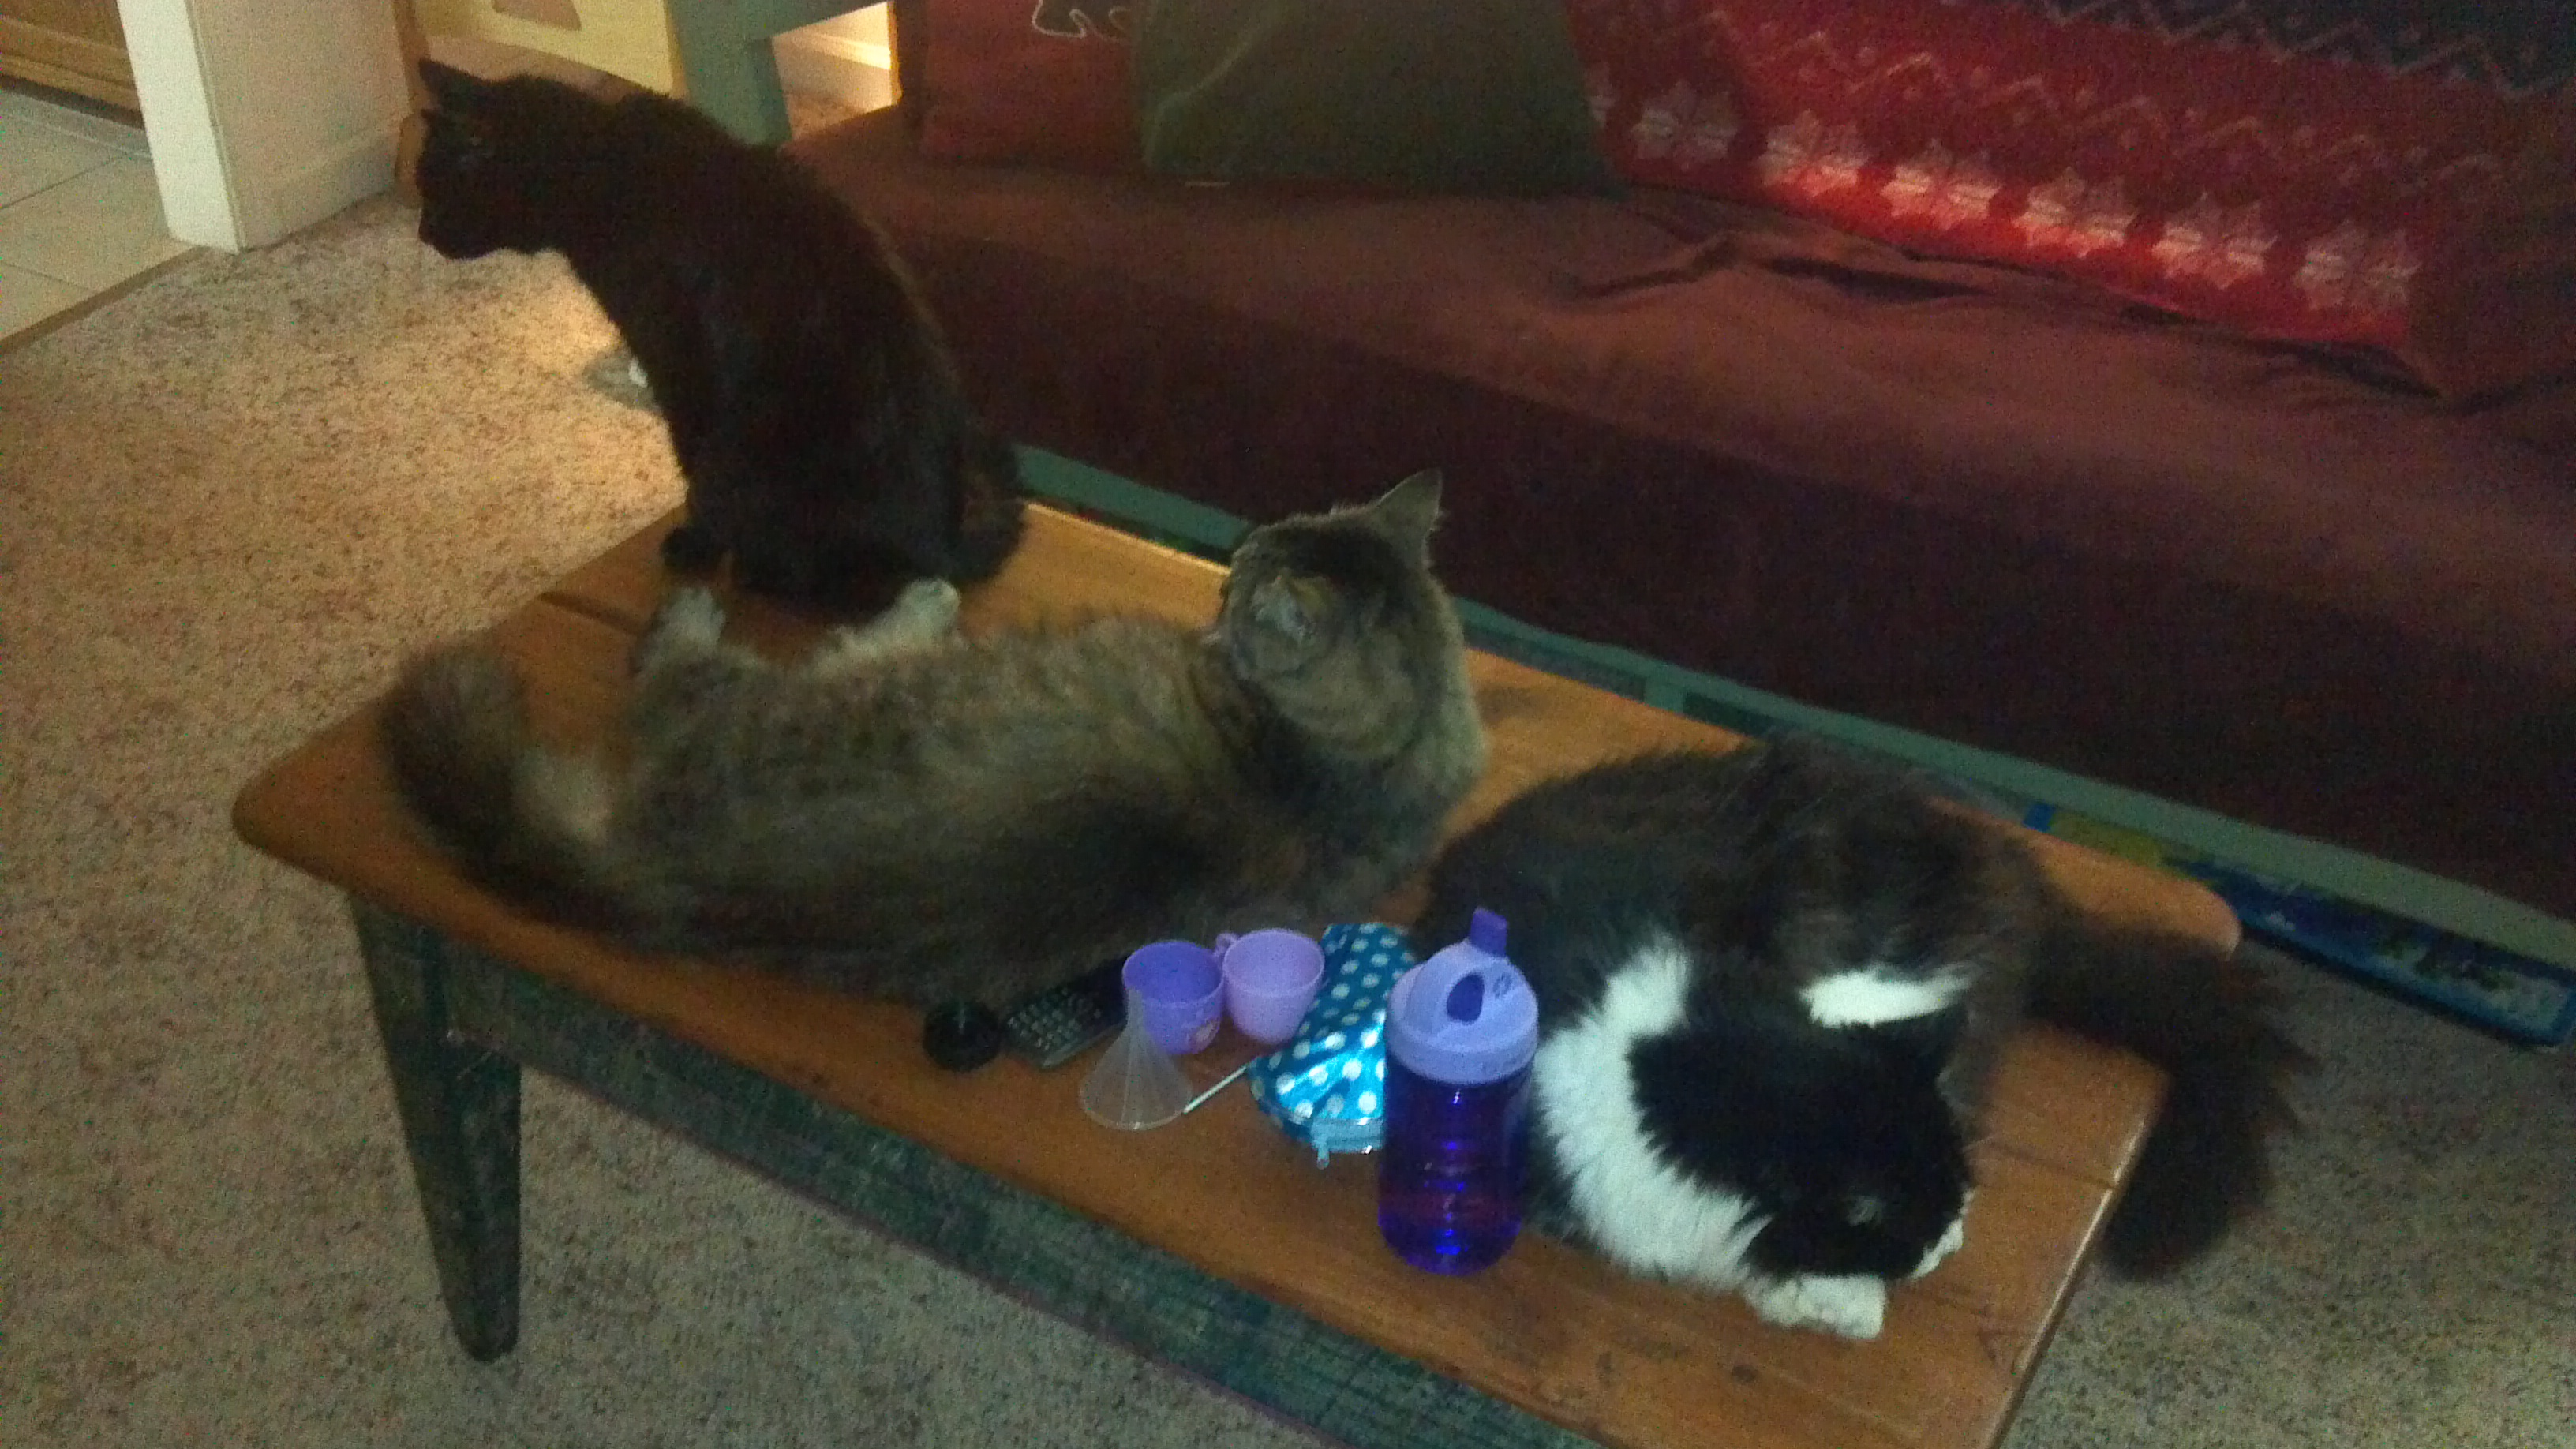 Monday evening cat blogging – Bruce Mulkey